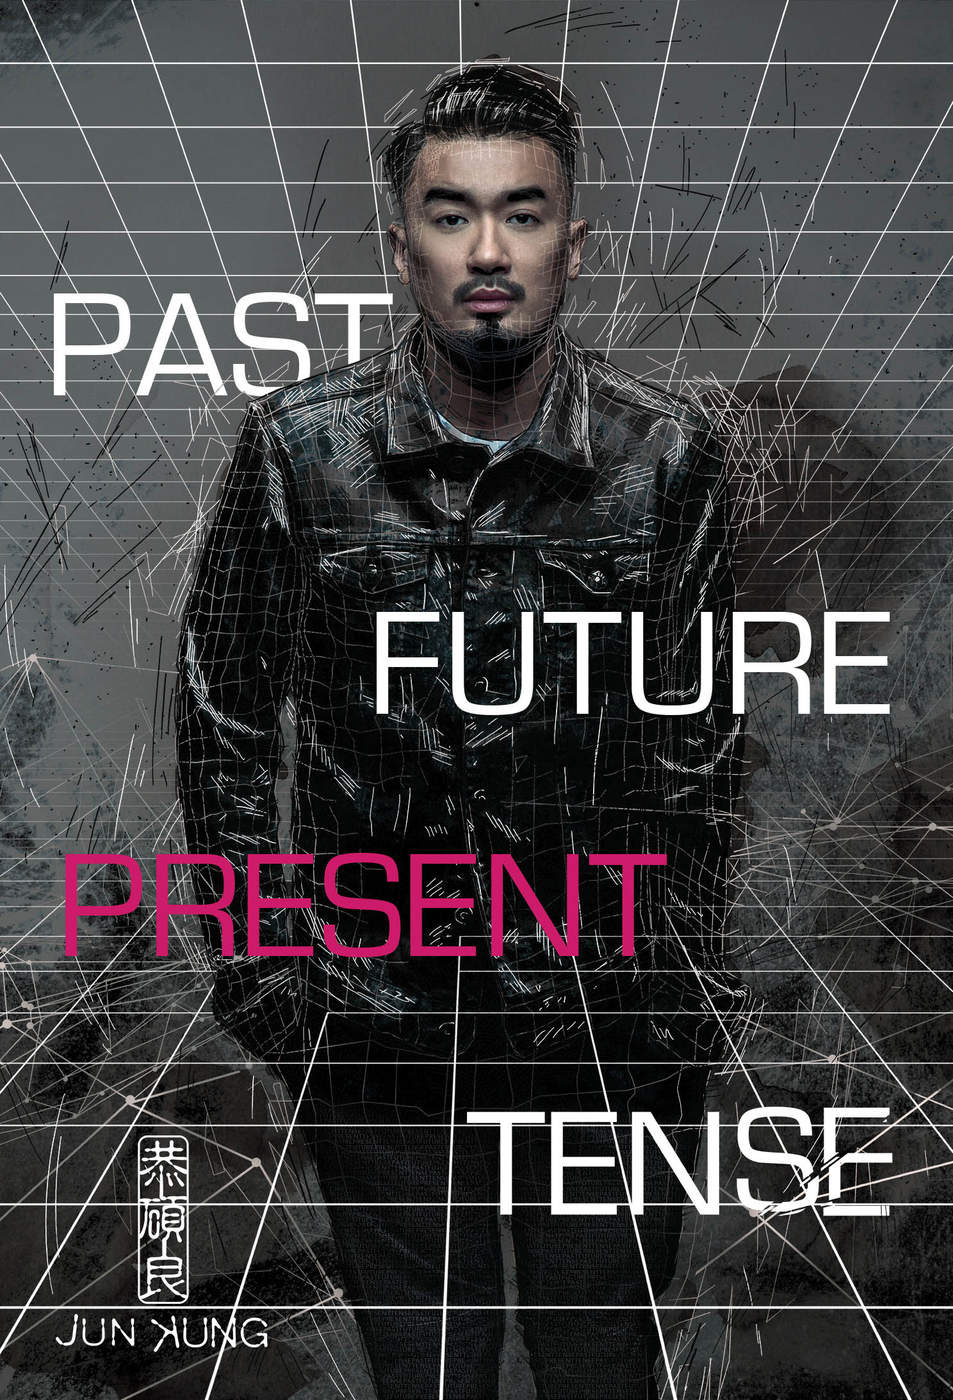 [Album] Past Future Present Tense - 恭碩良 Jun Kung